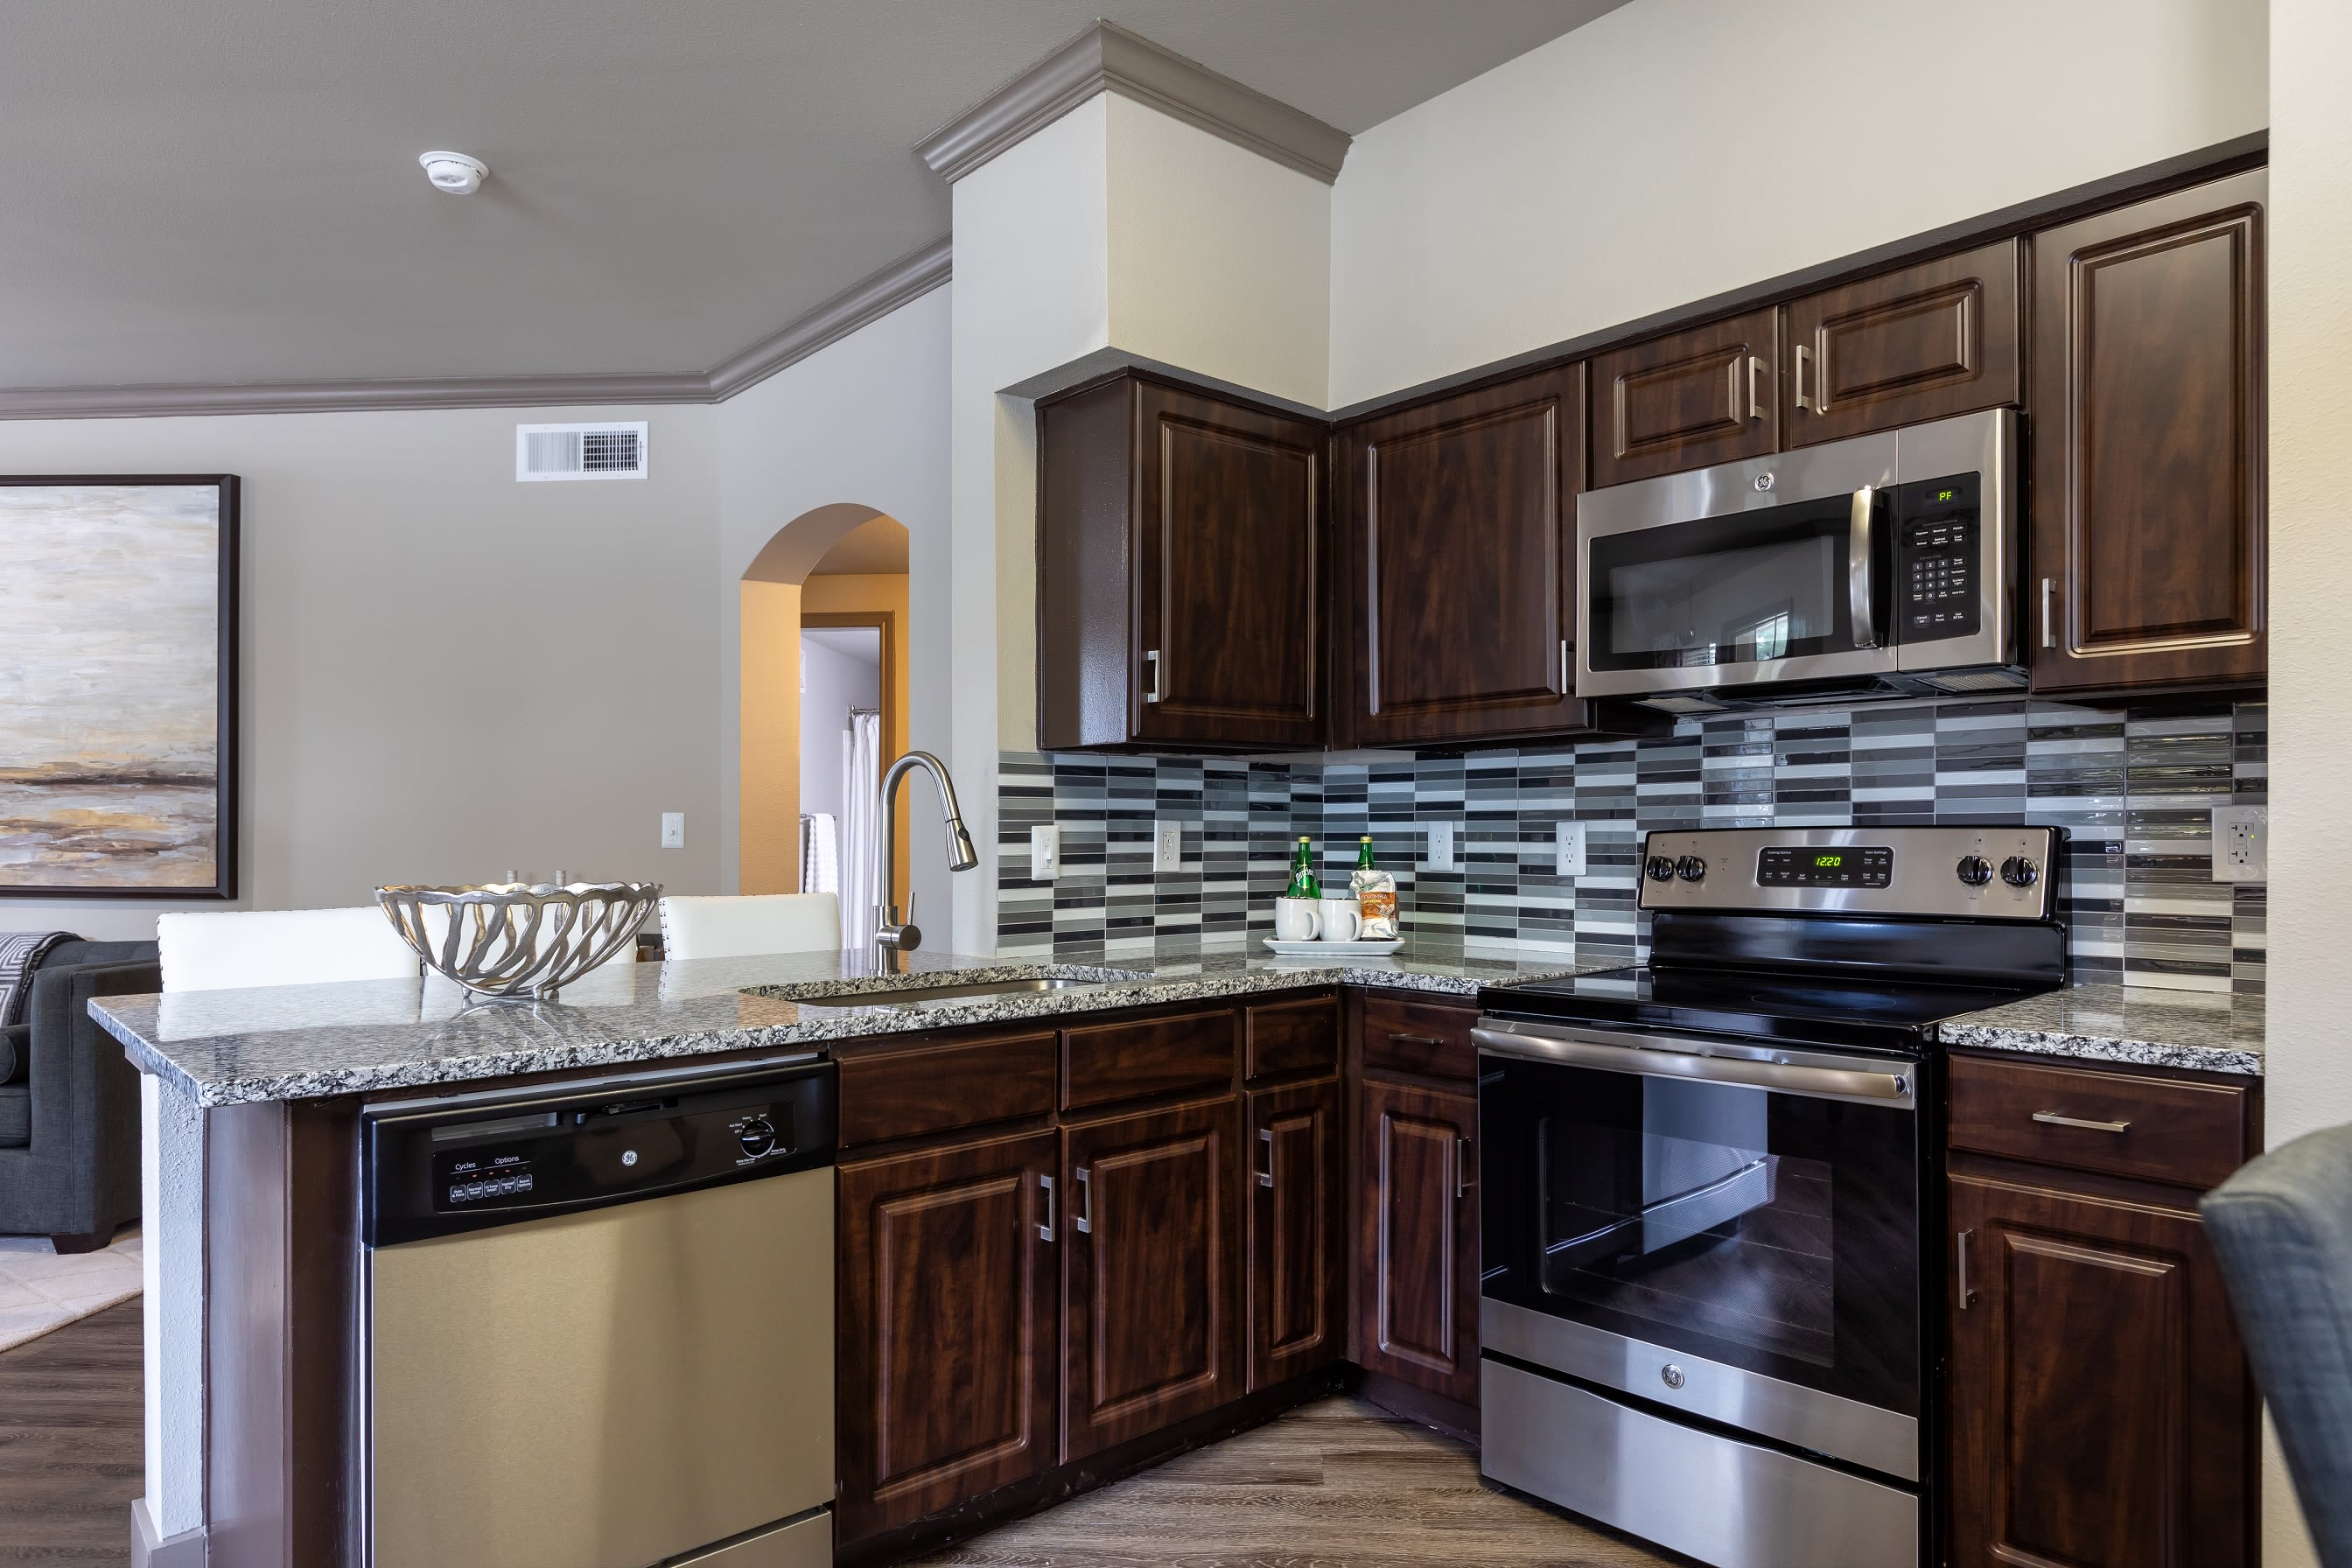 Modern kitchen with dark brown cabinetry and granite countertops at Artisan at Lake Wyndemere in The Woodlands, Texas